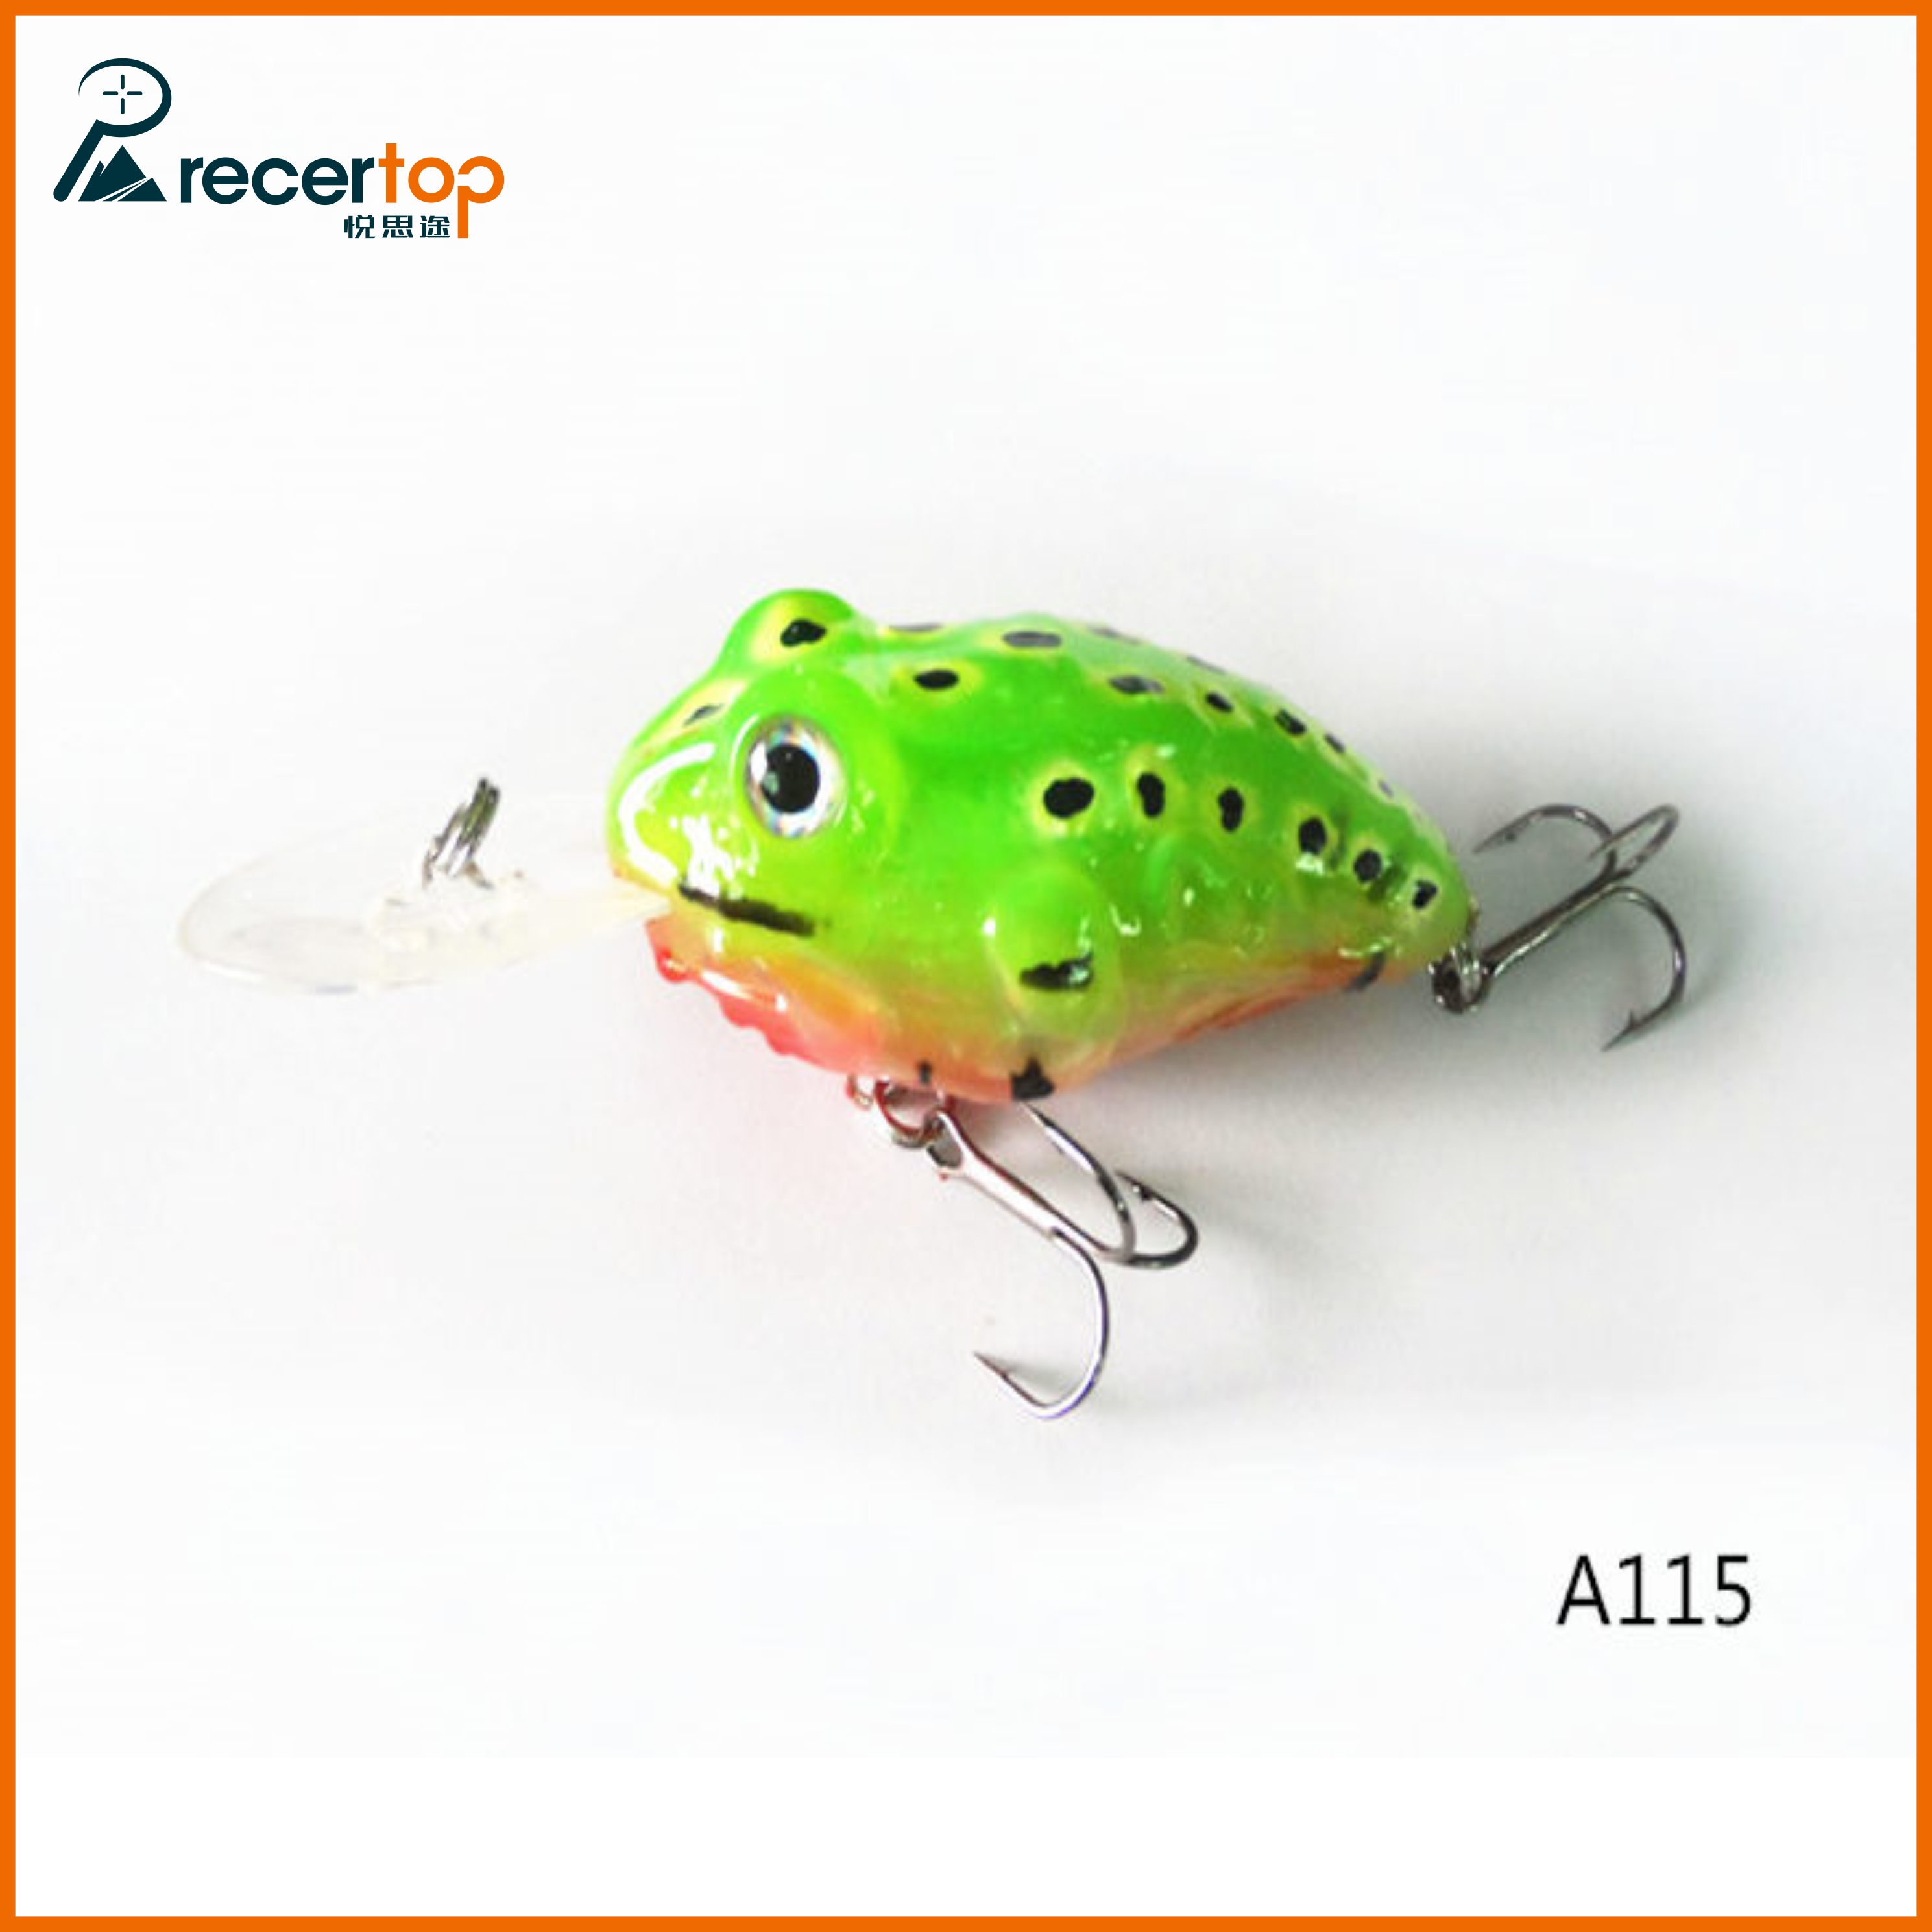 Recertop fishing lures baits hard soft lures for Hard and soft fishing